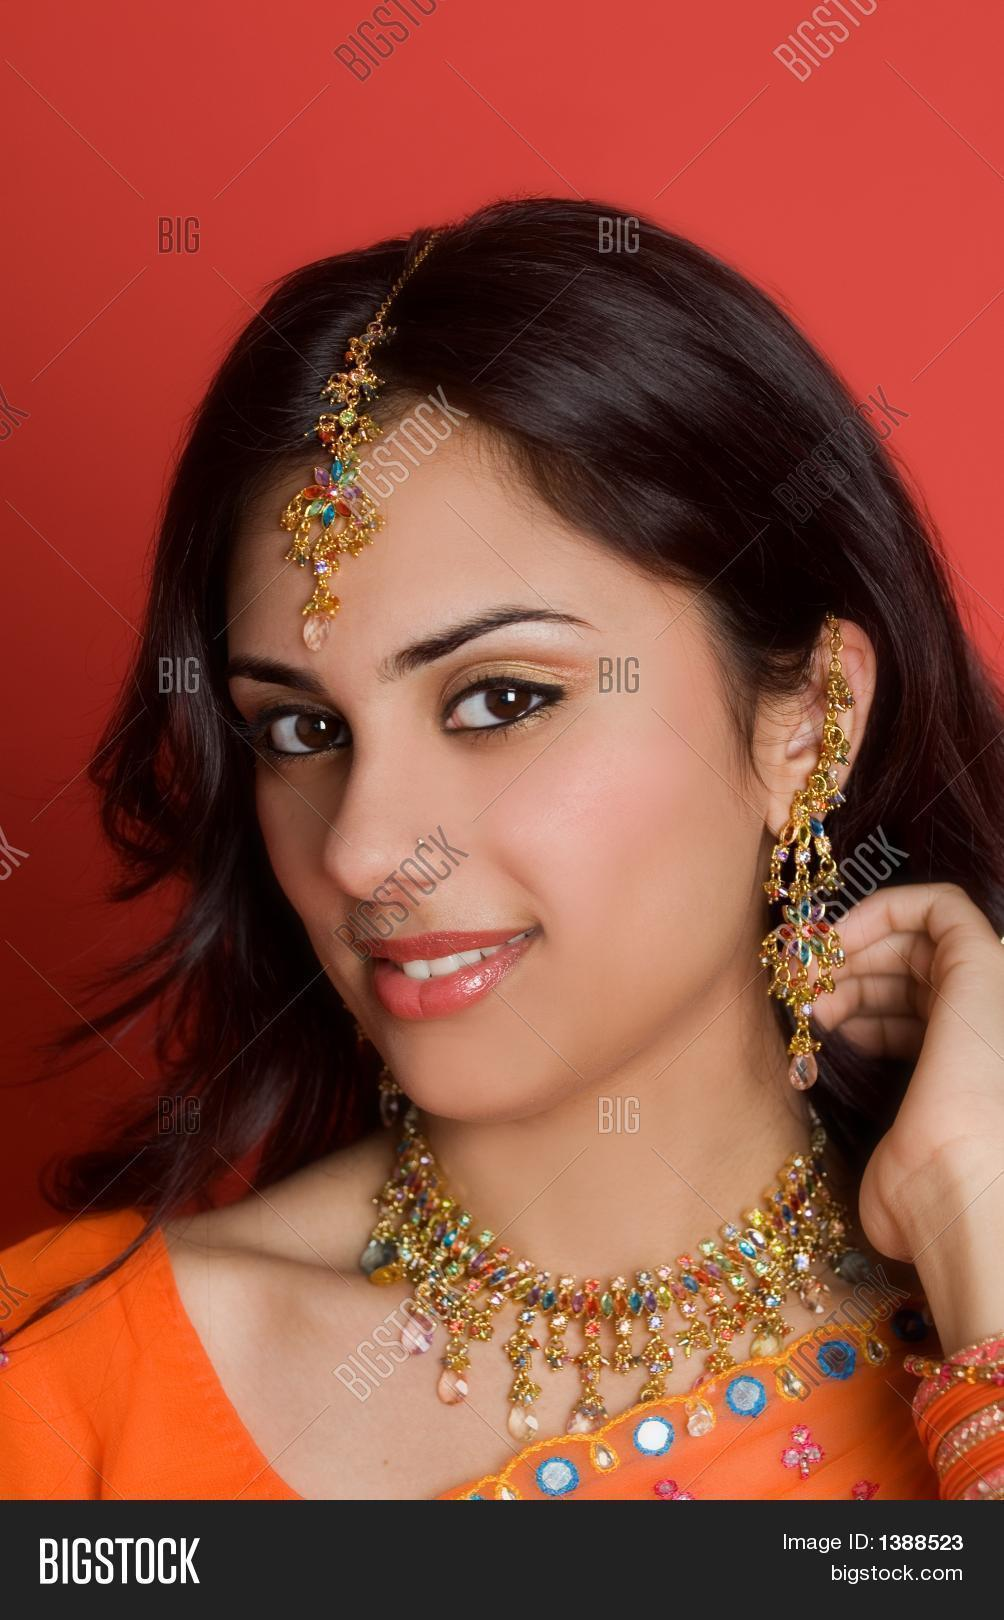 palmetto hindu single women Hindu woman from india wearing a bindi a bindi ( hindi : बिंदी , from sanskrit बिन्दु bindú , meaning point, drop, dot or small particle) is a coloured dot worn on the centre of the forehead, originally by hindu and jain women.